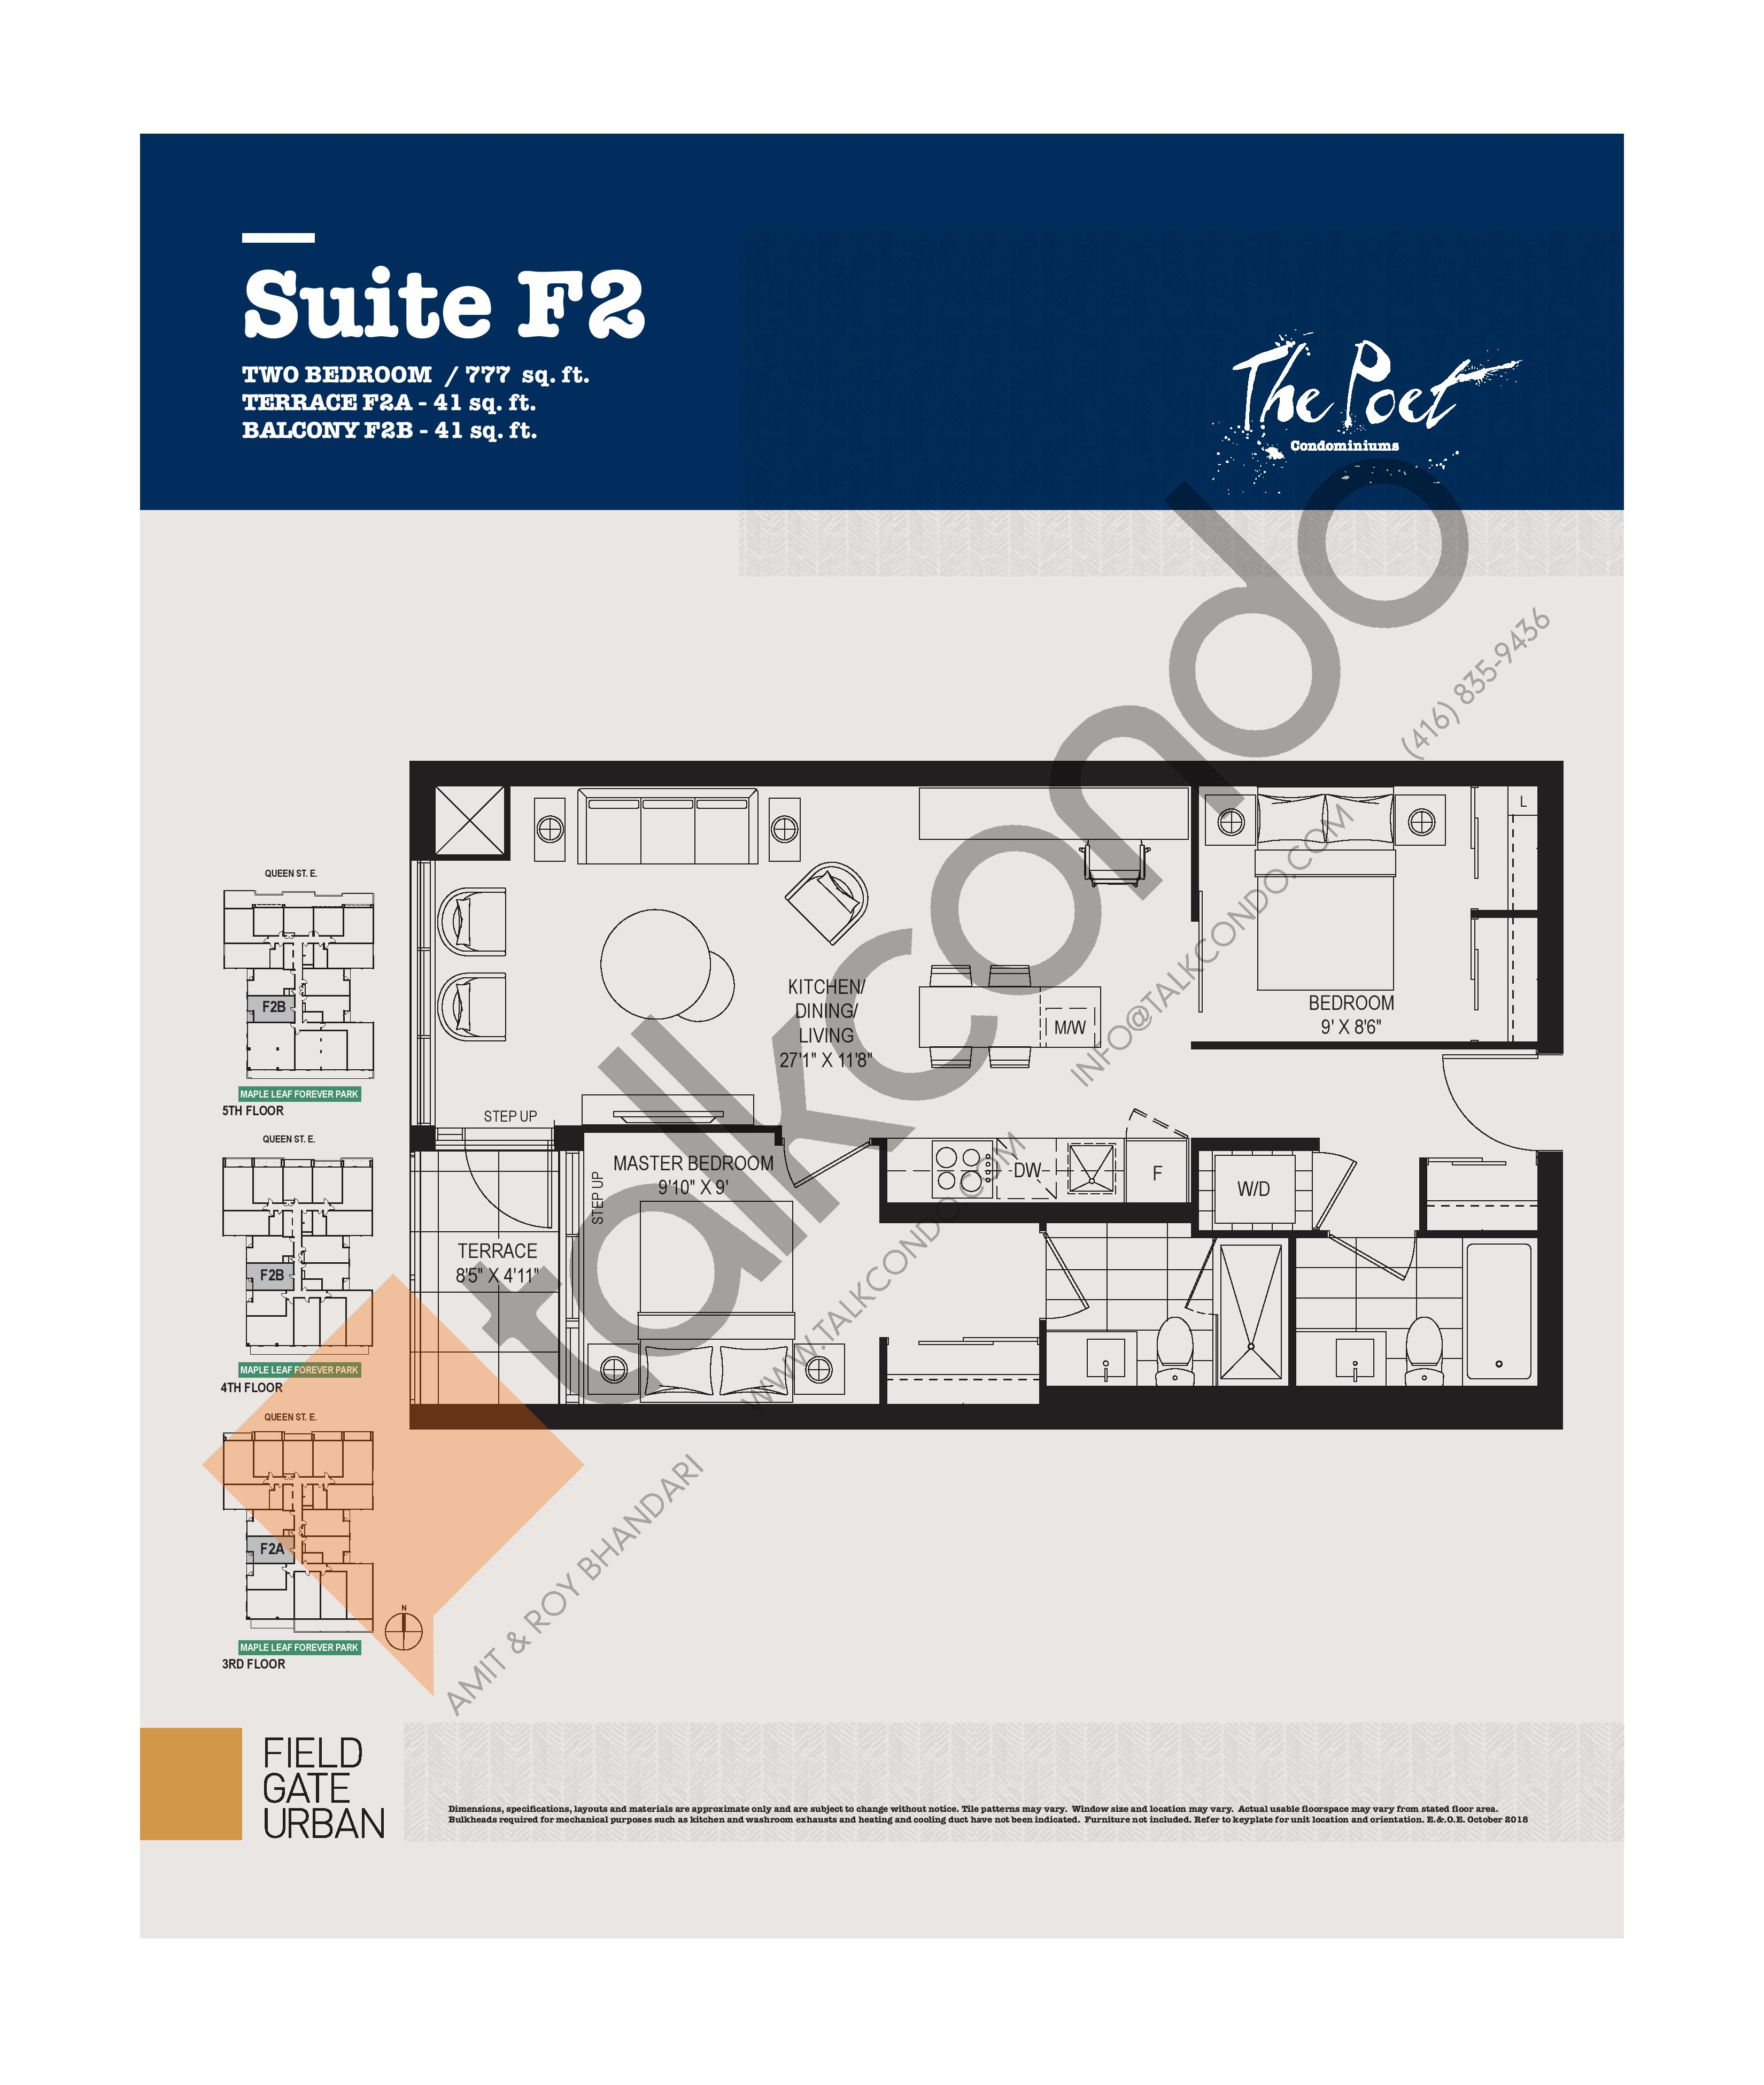 F2 Floor Plan at The Poet Condos - 777 sq.ft